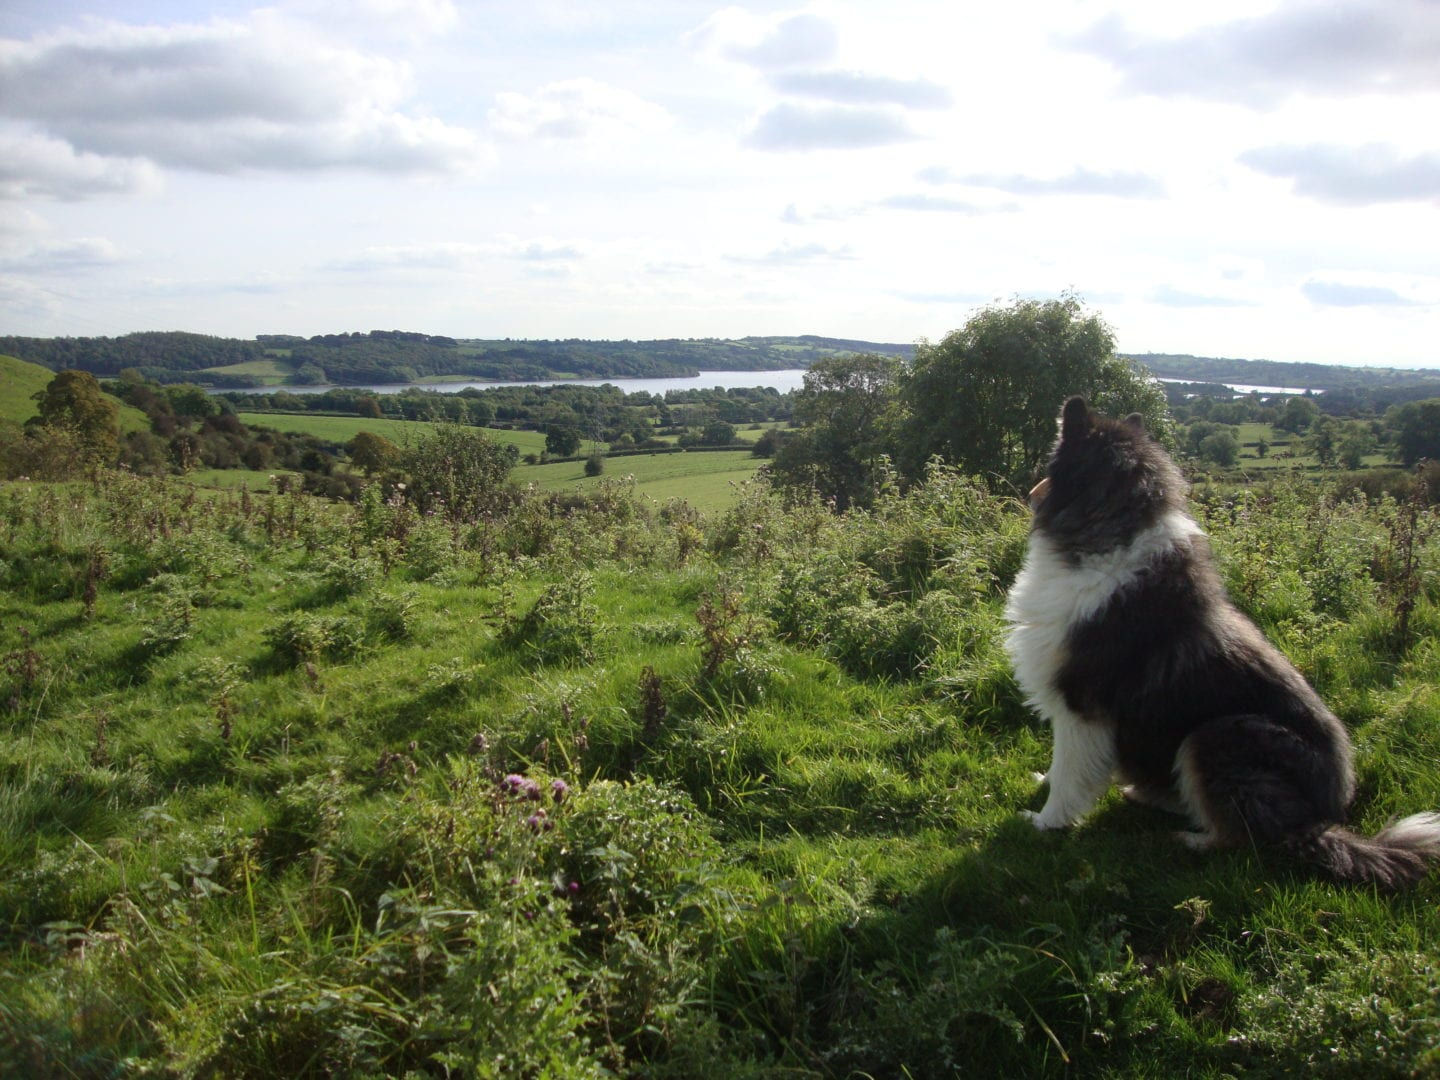 Dog surveying the land